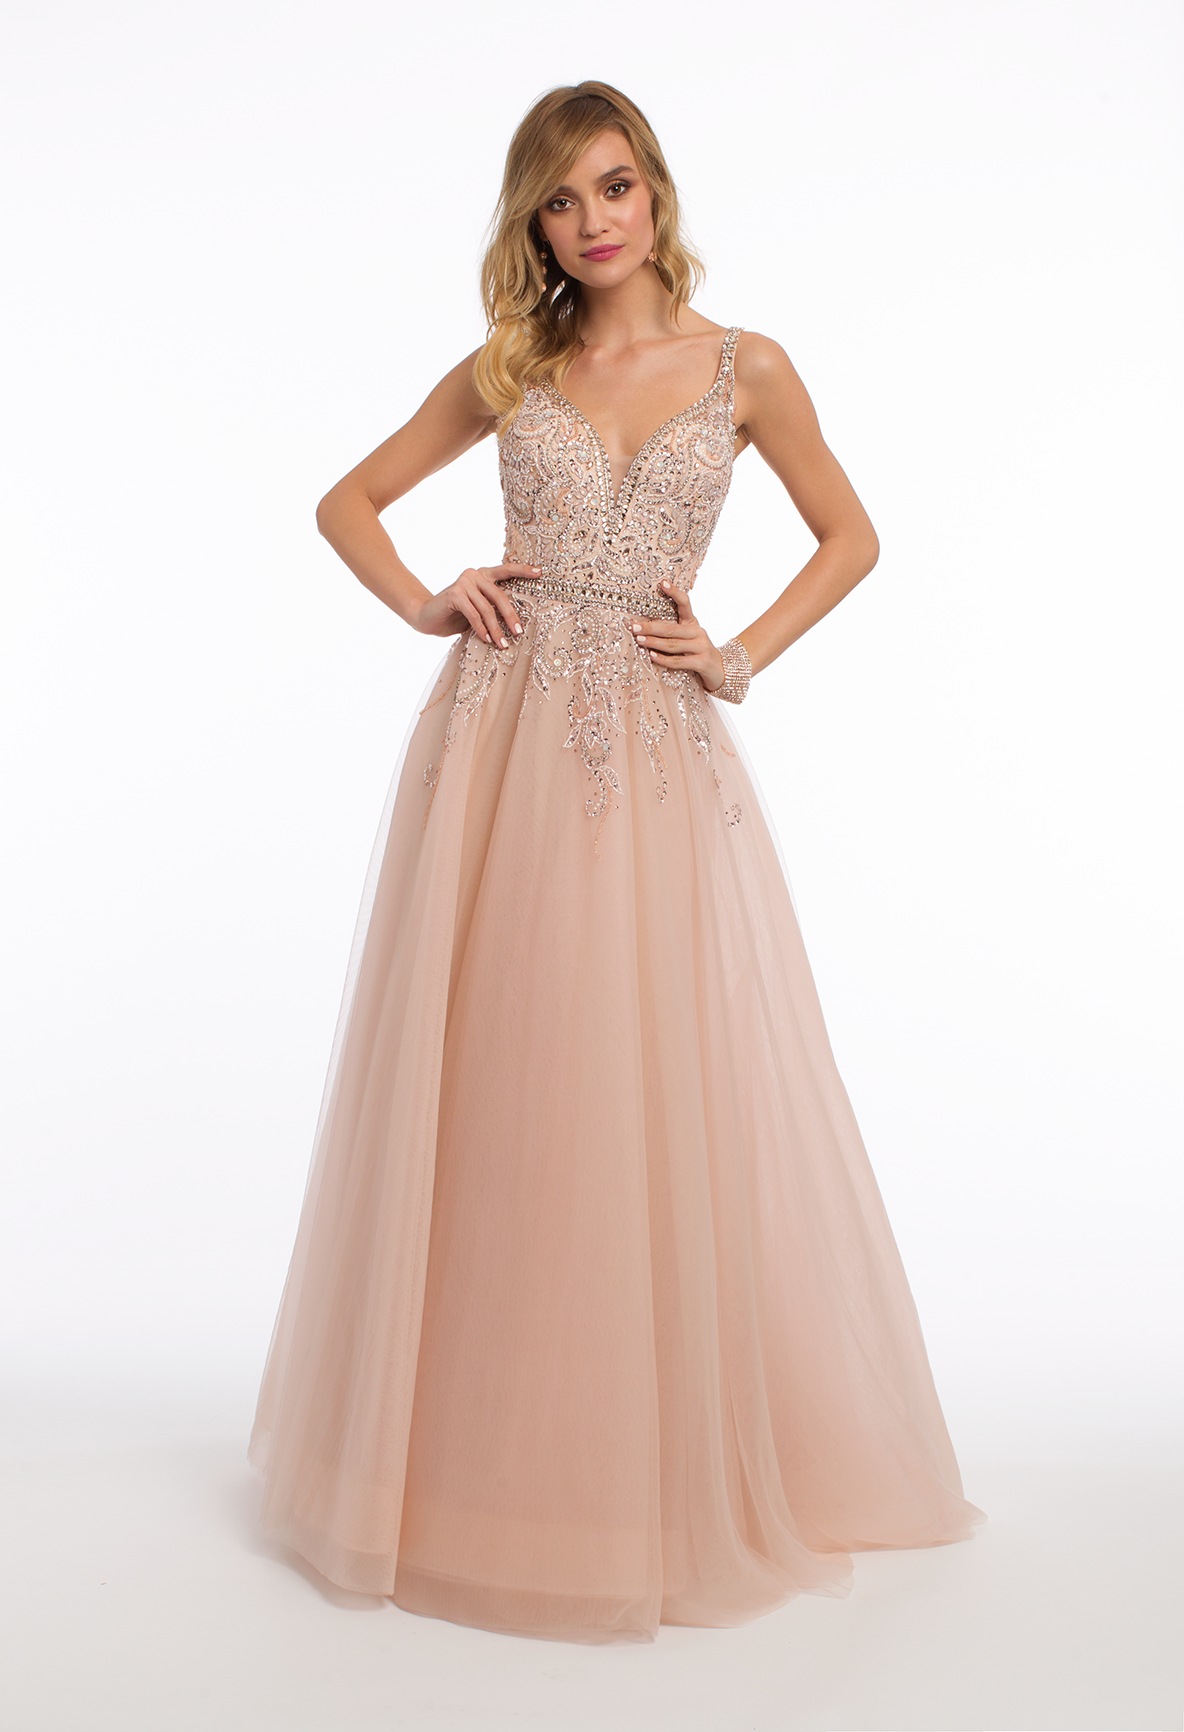 Sweetheart beaded tulle ballgown dress pinterest plunging